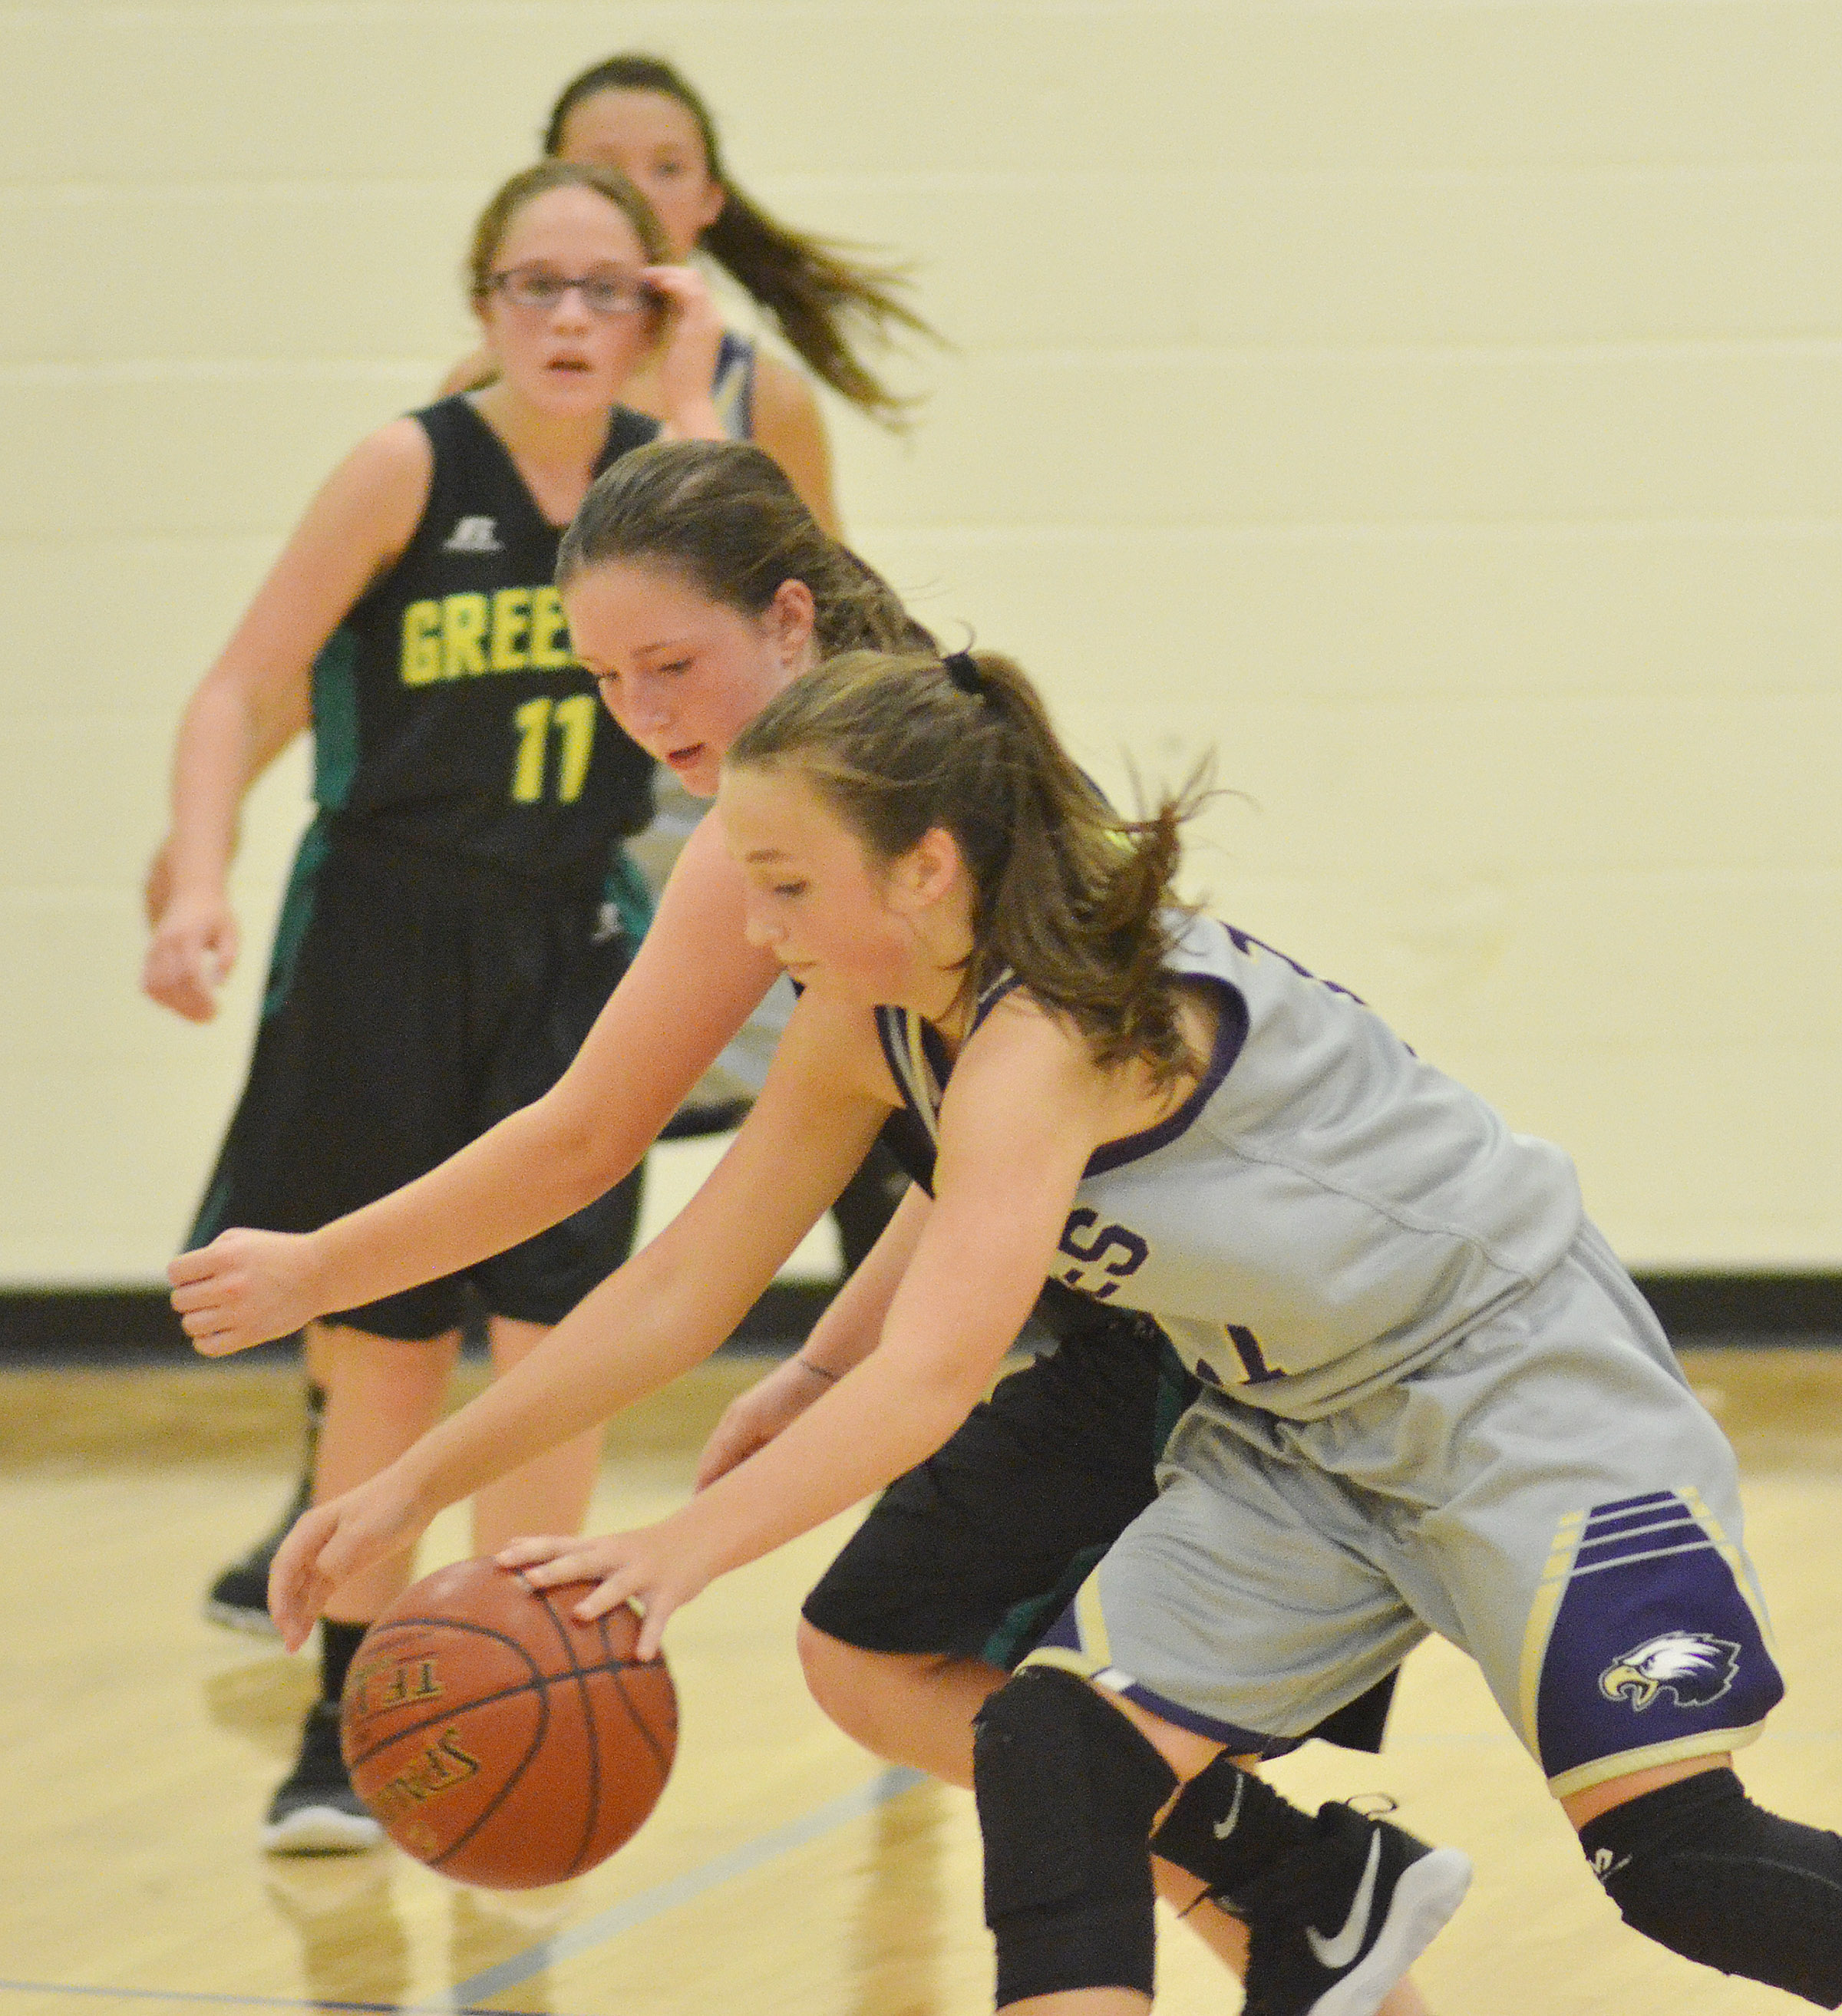 CMS eighth-grader Lainey Watson battles for the ball.